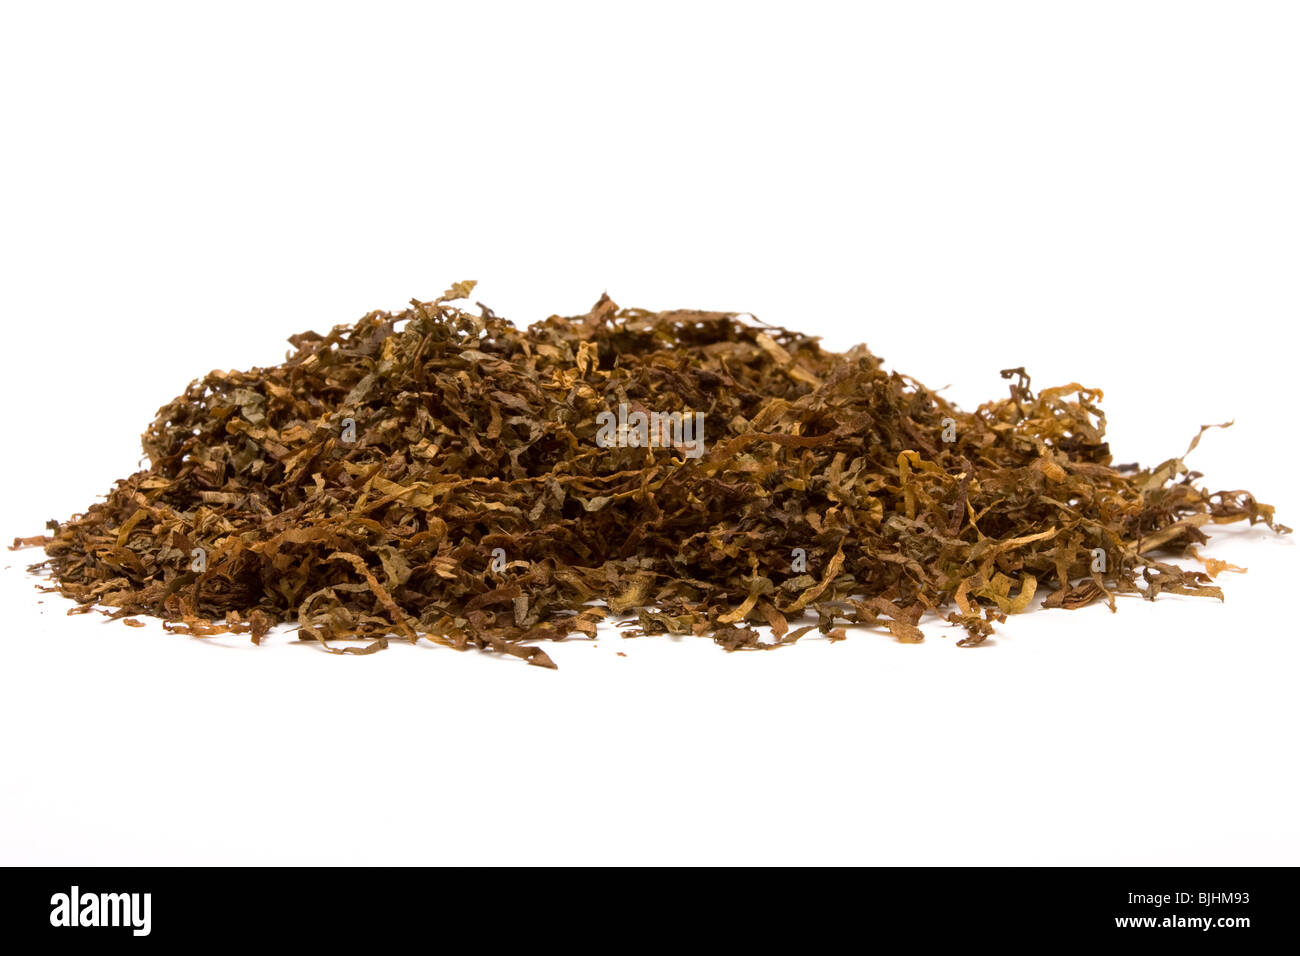 Pile of shredded cigarette Tobacco against white backdrop. - Stock Image